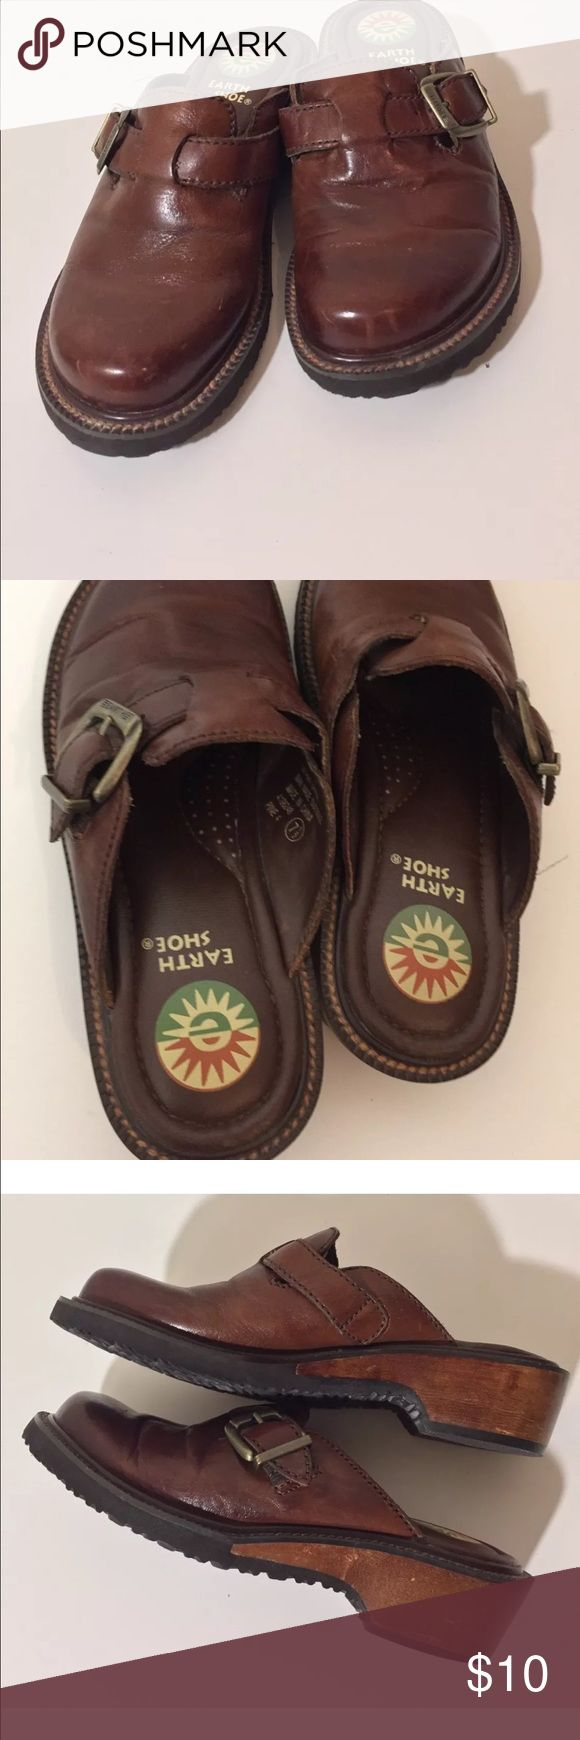 Earth shoe mule clogs 7.5 CLOGS MULES SLIP ON GELRON 2000 EARTH SPIRIT WOMEN'S SZ 7.5  BROWN LEATHER earth spirit  Shoes Mules & Clogs